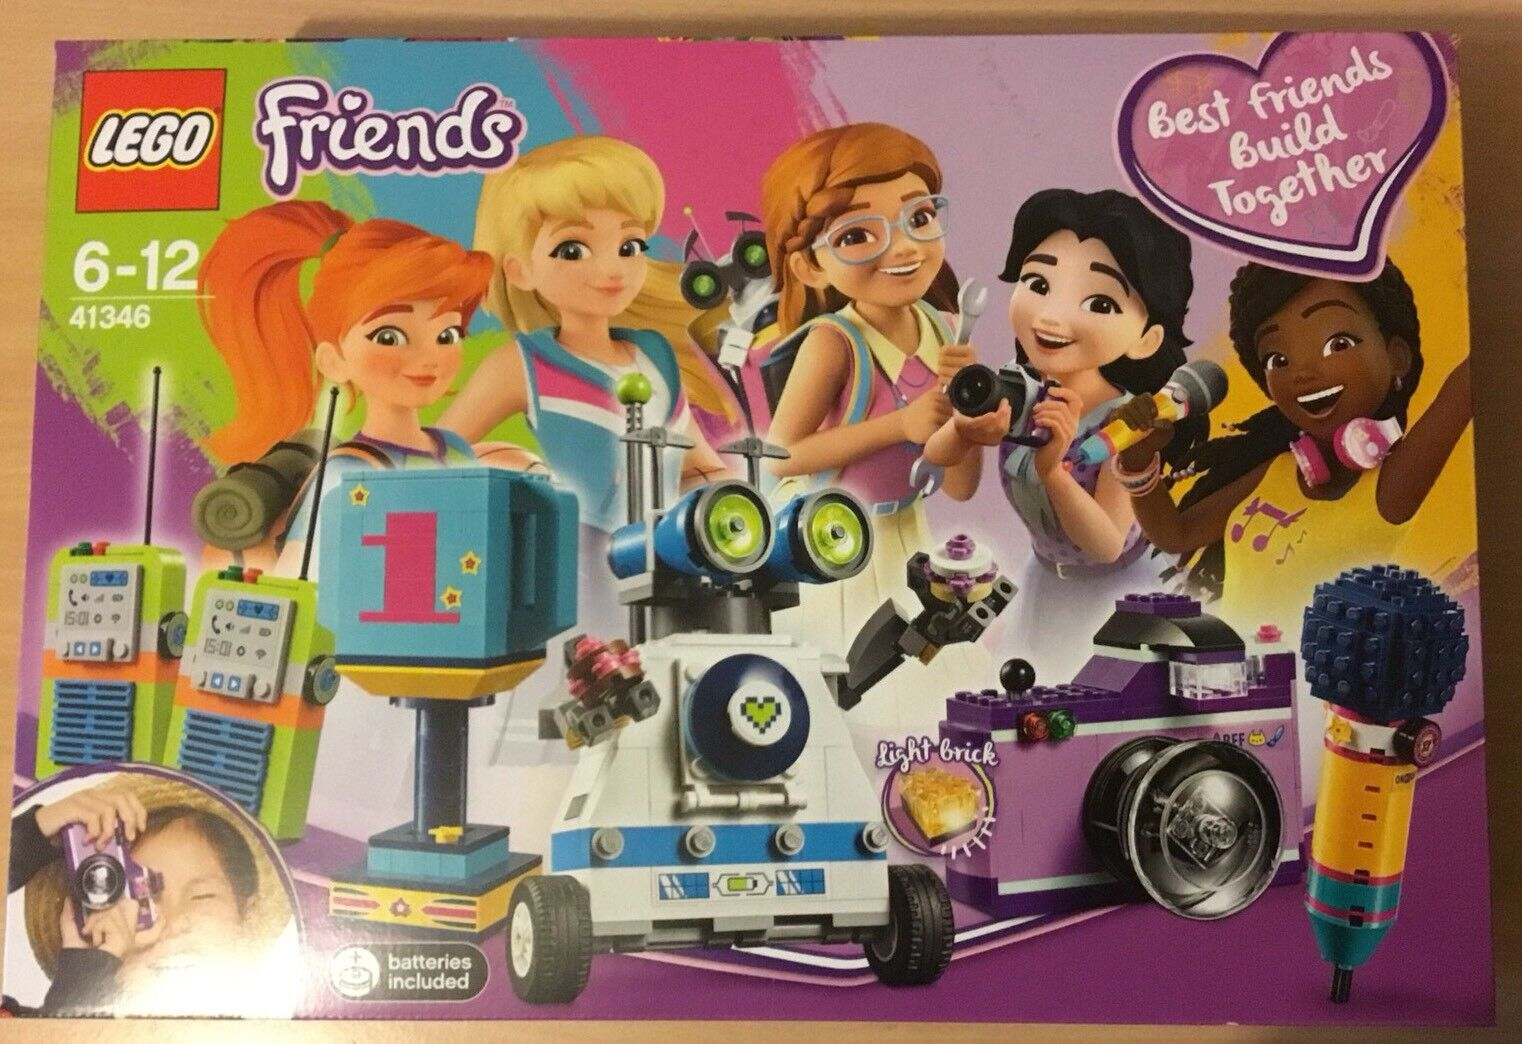 BNS LEGO Friends Friendship Box 41346 Best Friends Build Together